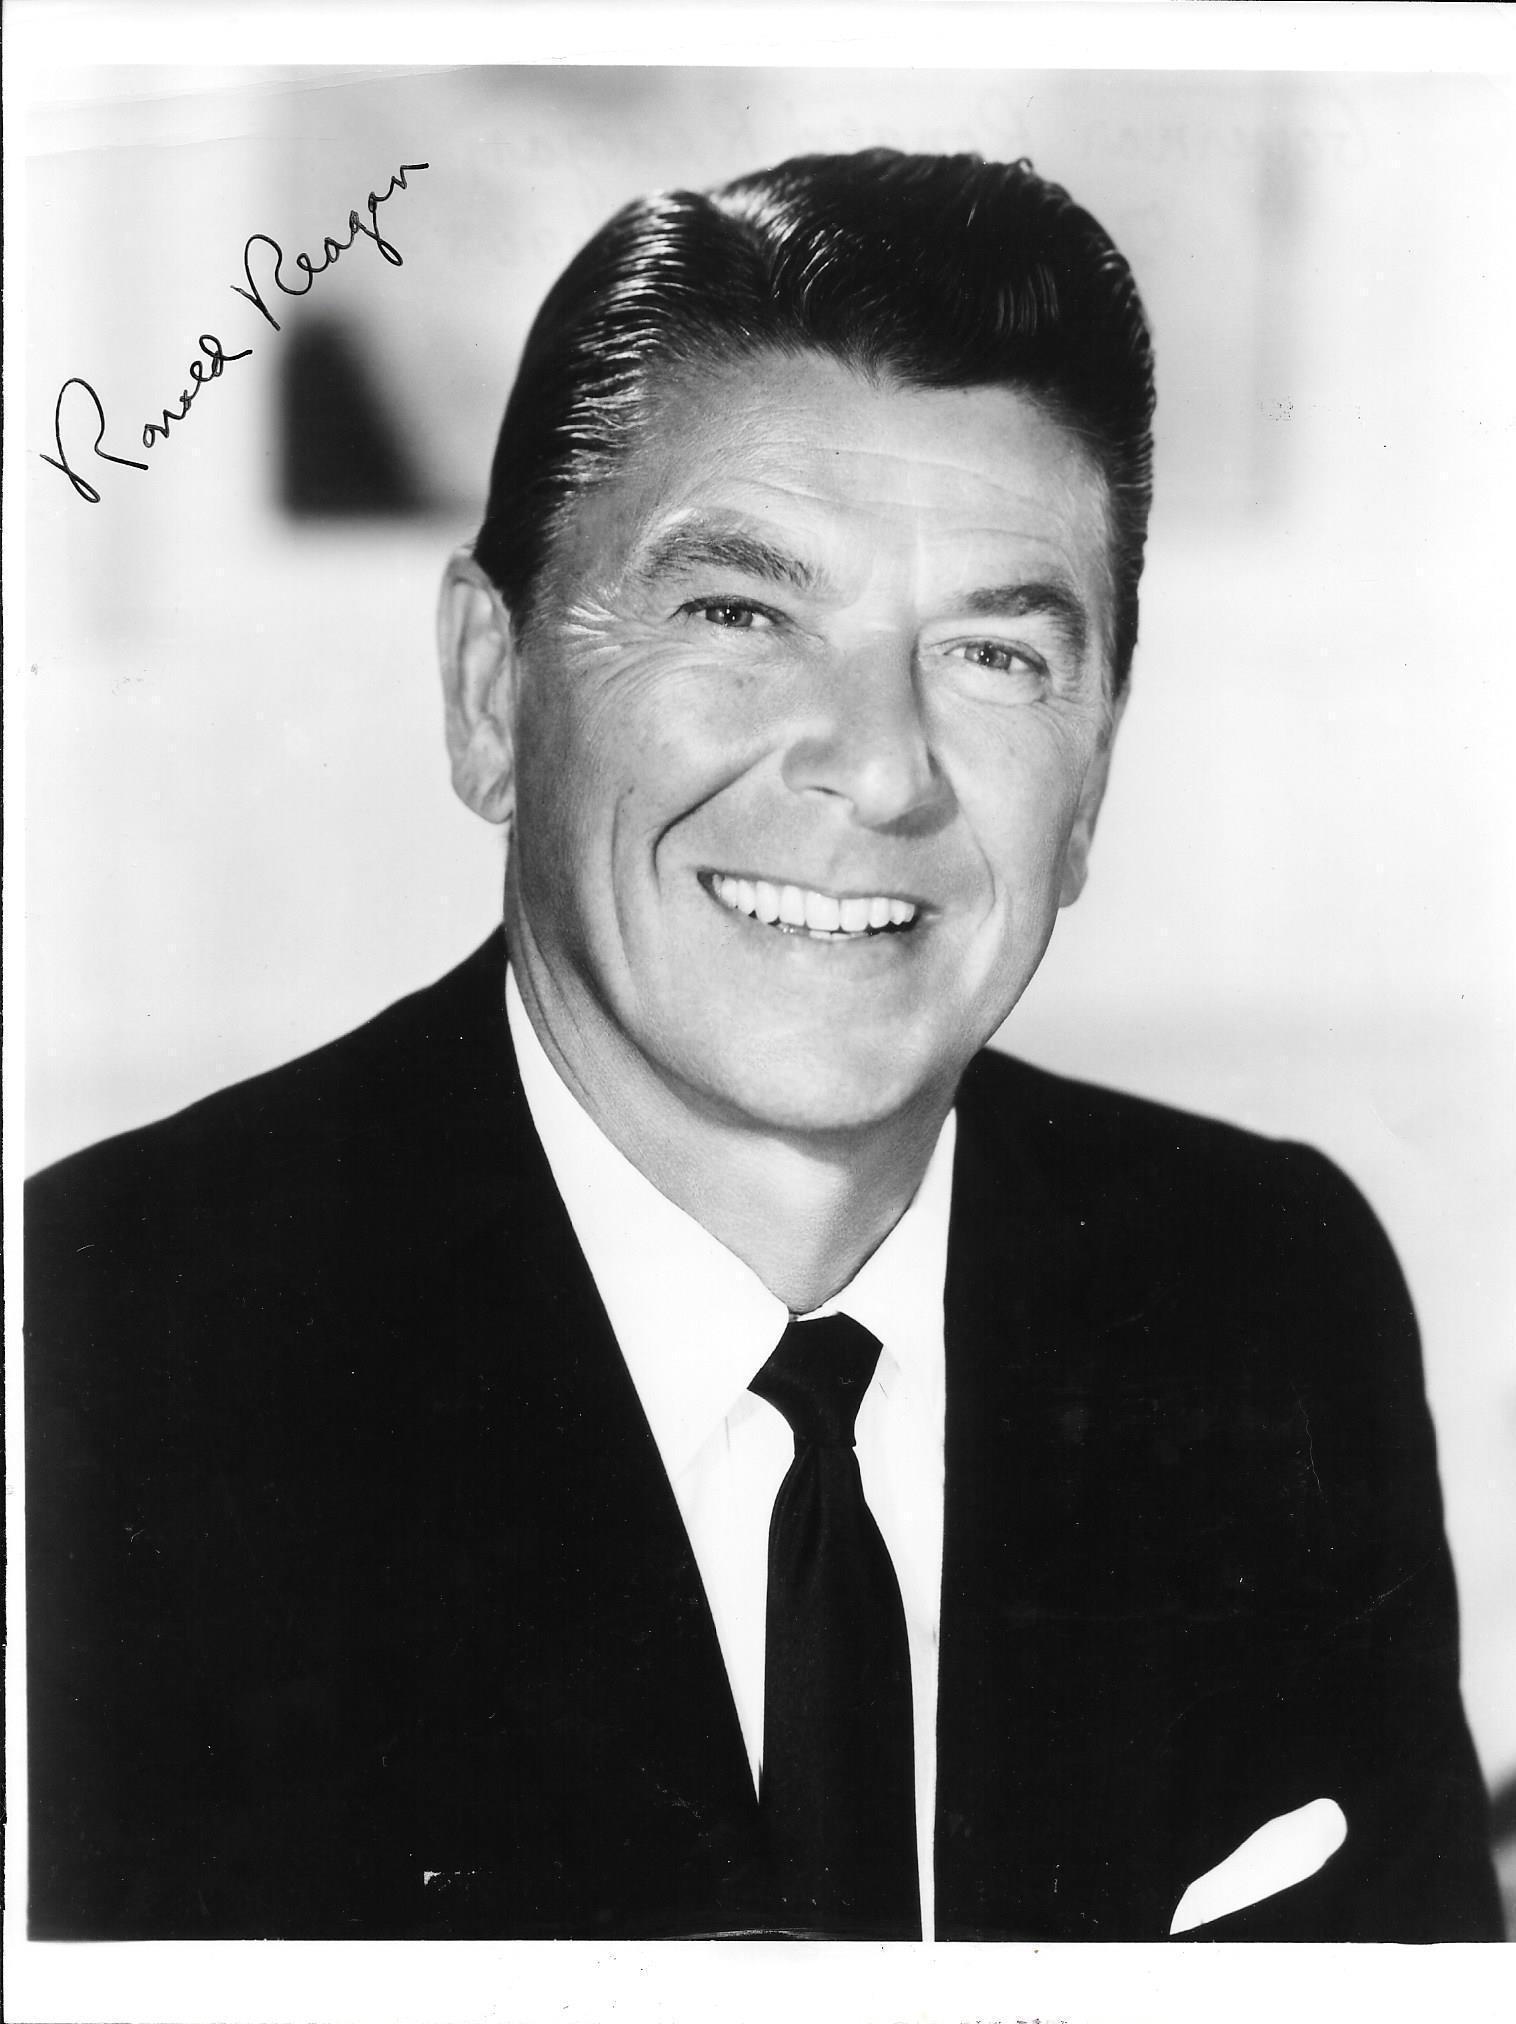 sample college ronald reagan essay in honor of the 10th annual ronald reagan symposium the robertson school of government is announcing a student essay